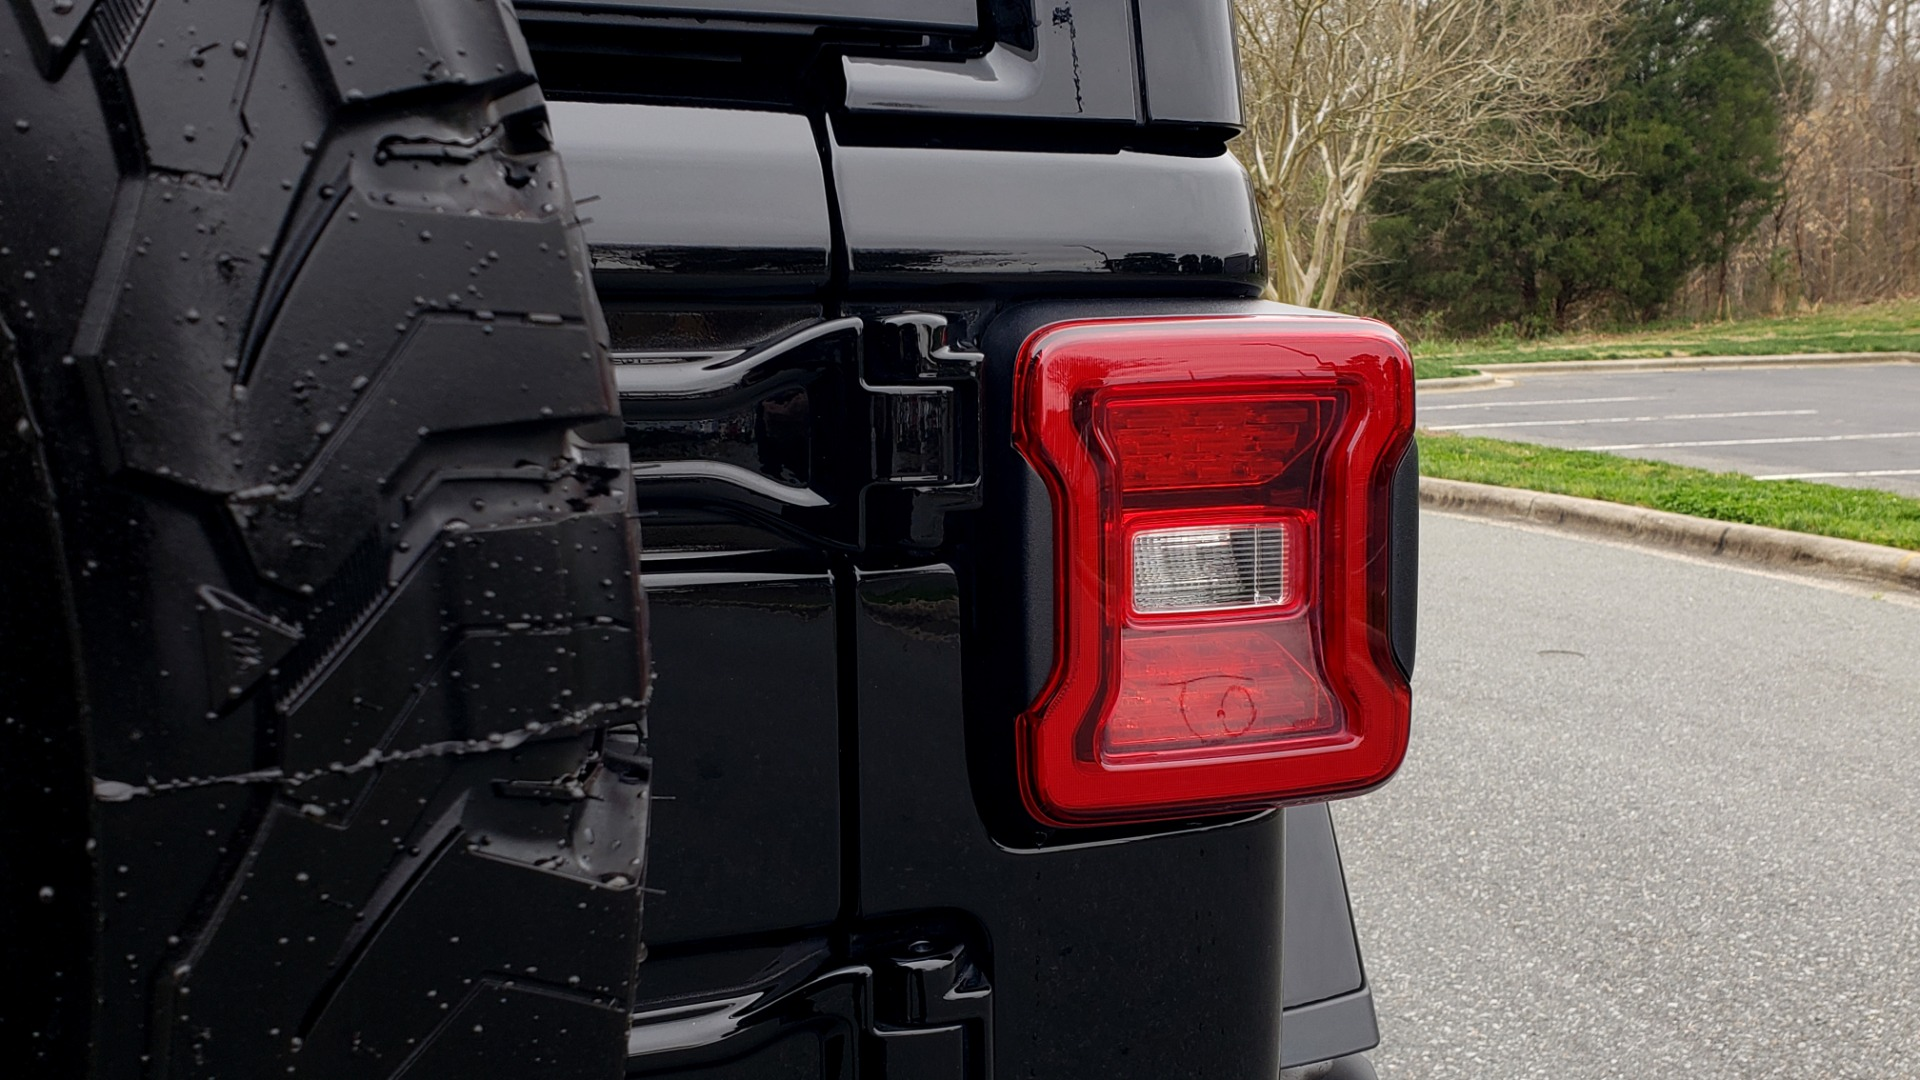 Used 2019 Jeep WRANGLER UNLIMITED RUBICON 4WD / V6 / 8-SPD AUTO / NAV / PWR TOP / REARVIEW for sale Sold at Formula Imports in Charlotte NC 28227 38